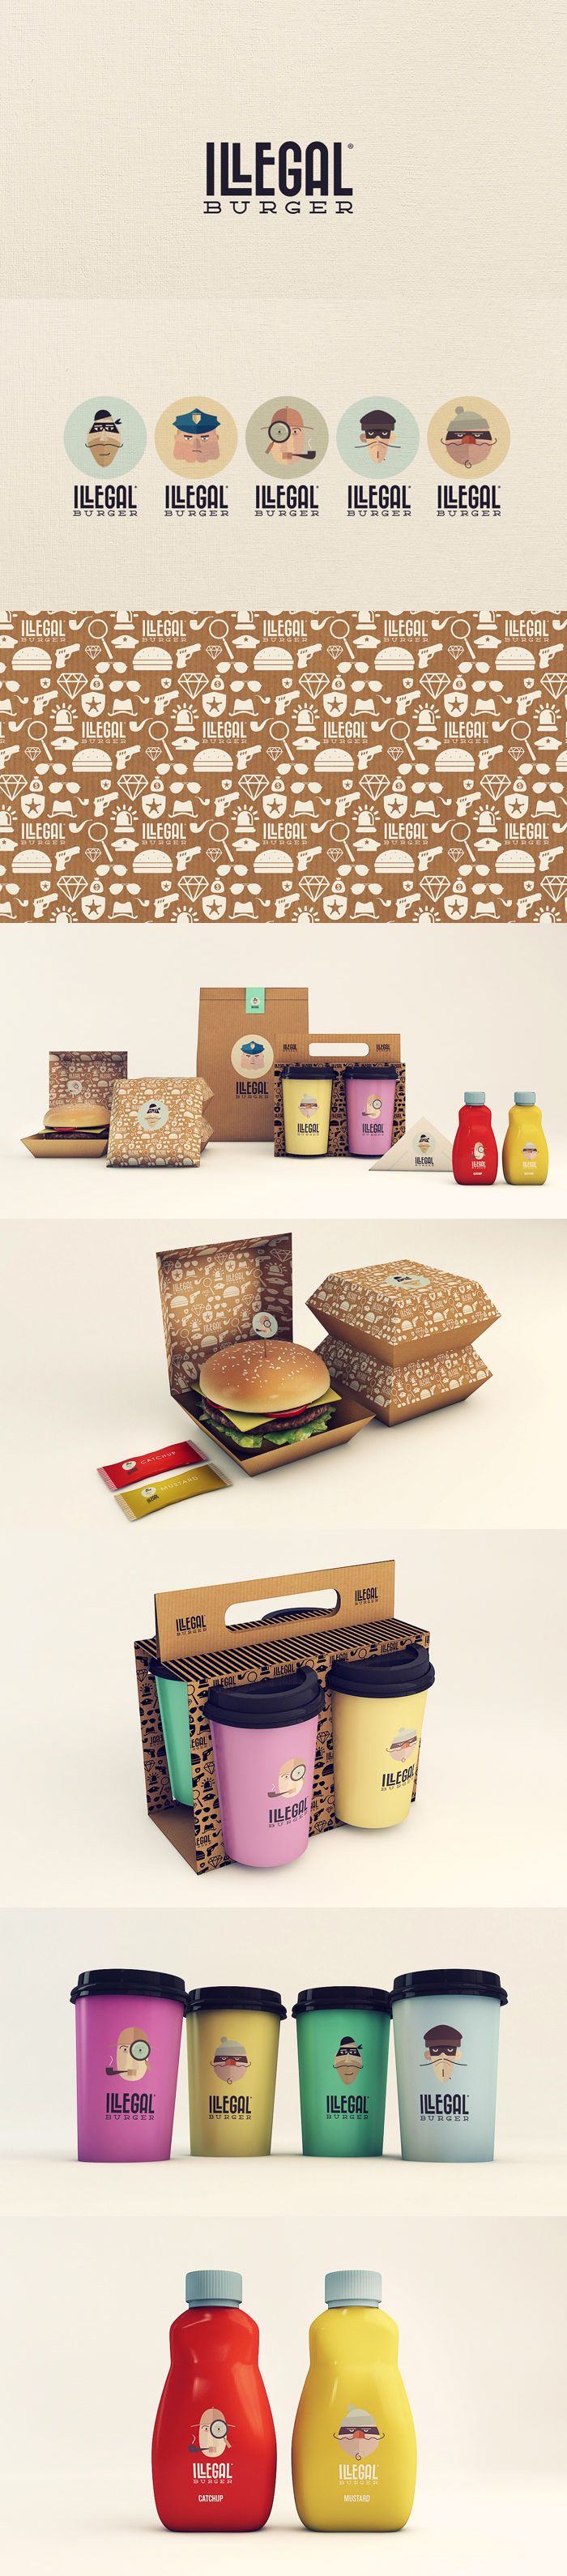 Illegal Burger Bar packaging